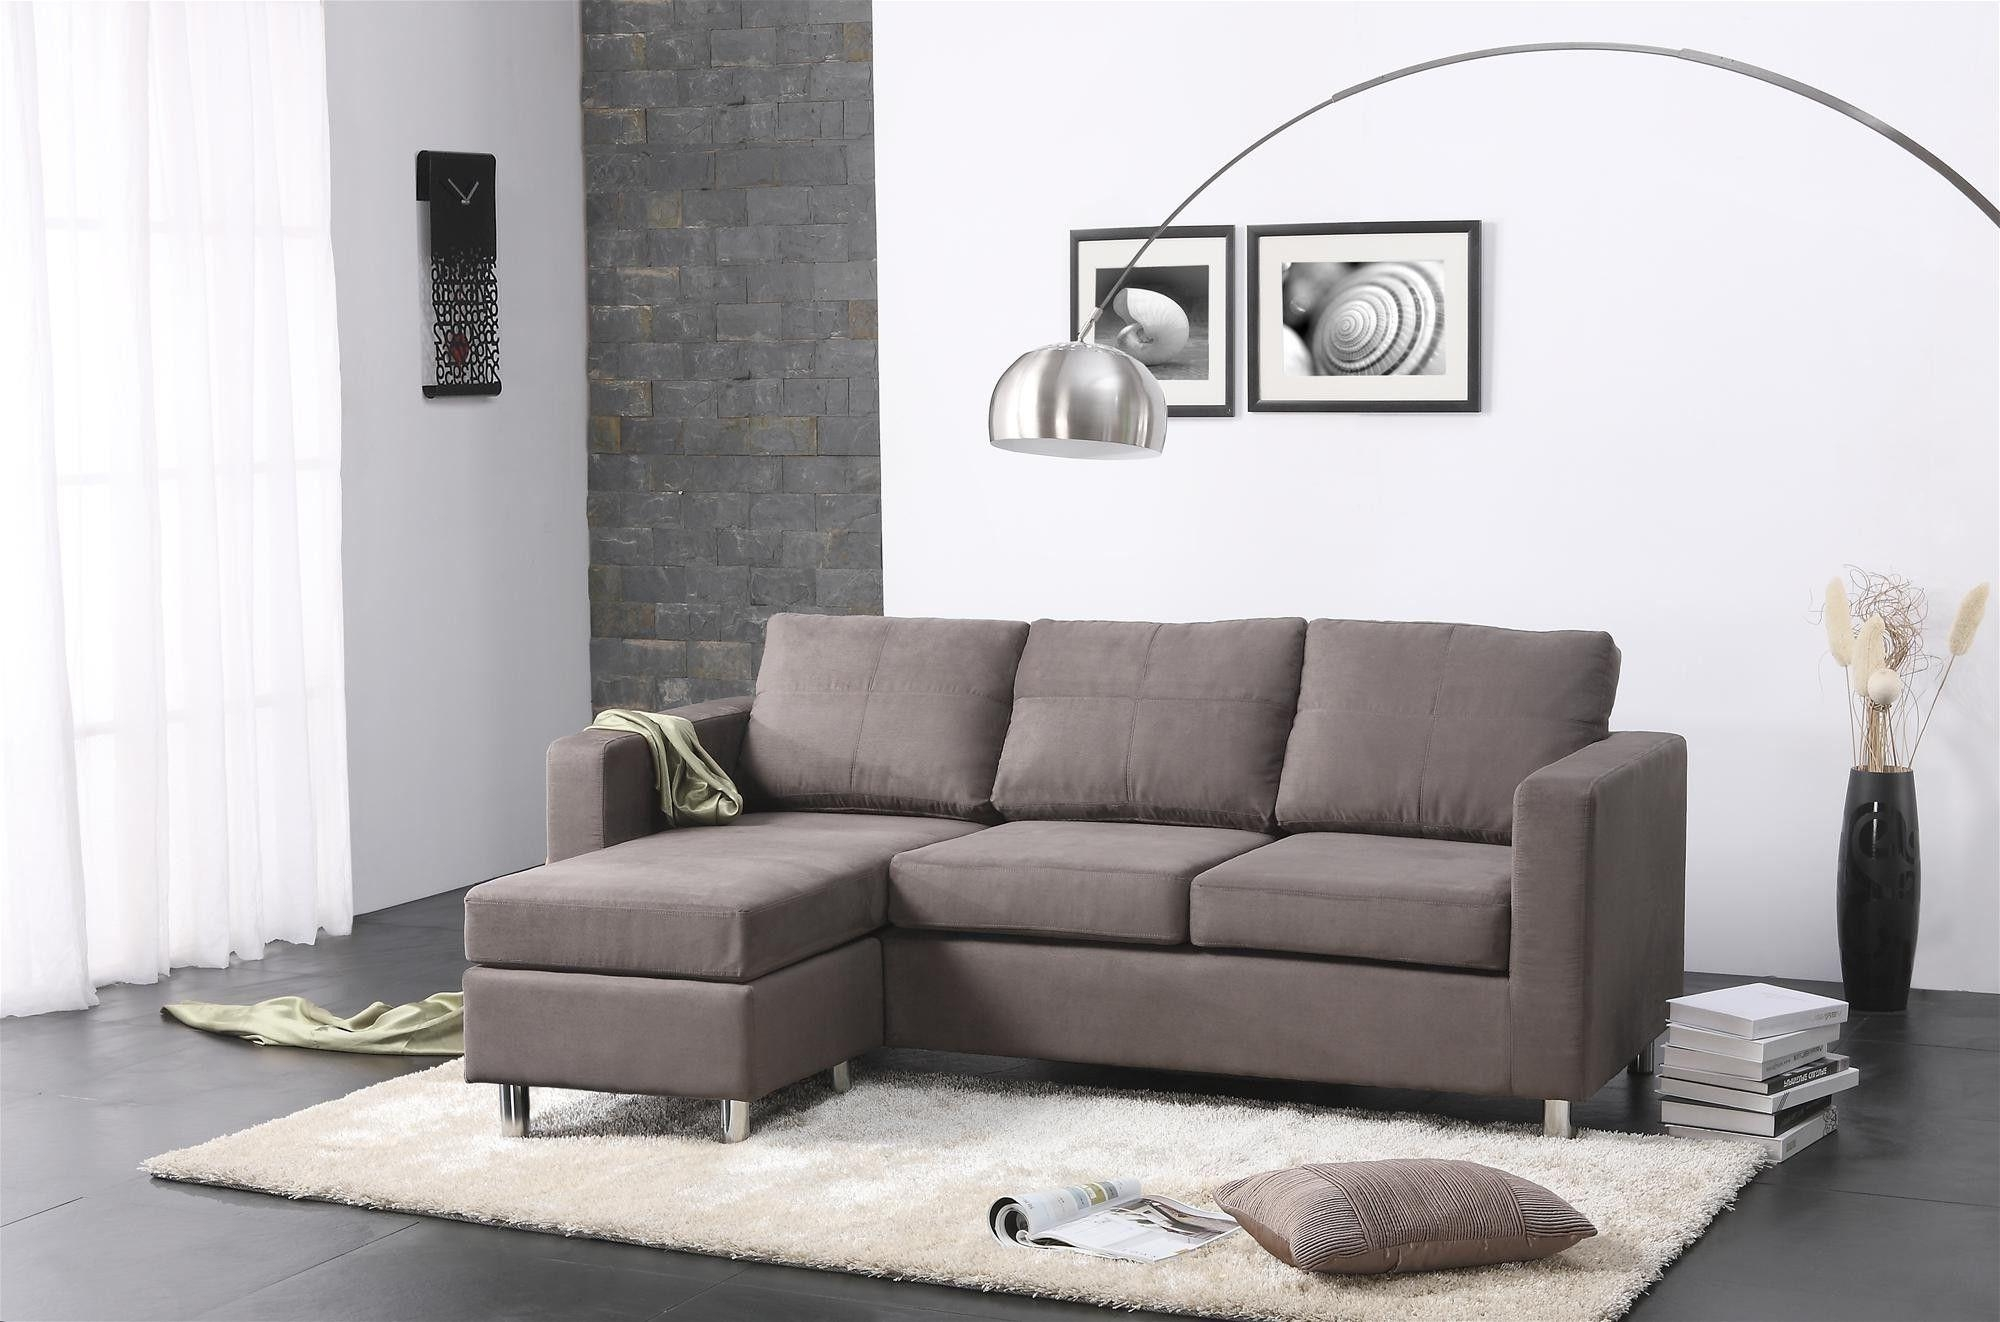 Opulent Ideas Couch For Small Living Room Exquisite Decoration 23 In Small Sectional Sofas For Small Spaces (View 13 of 20)